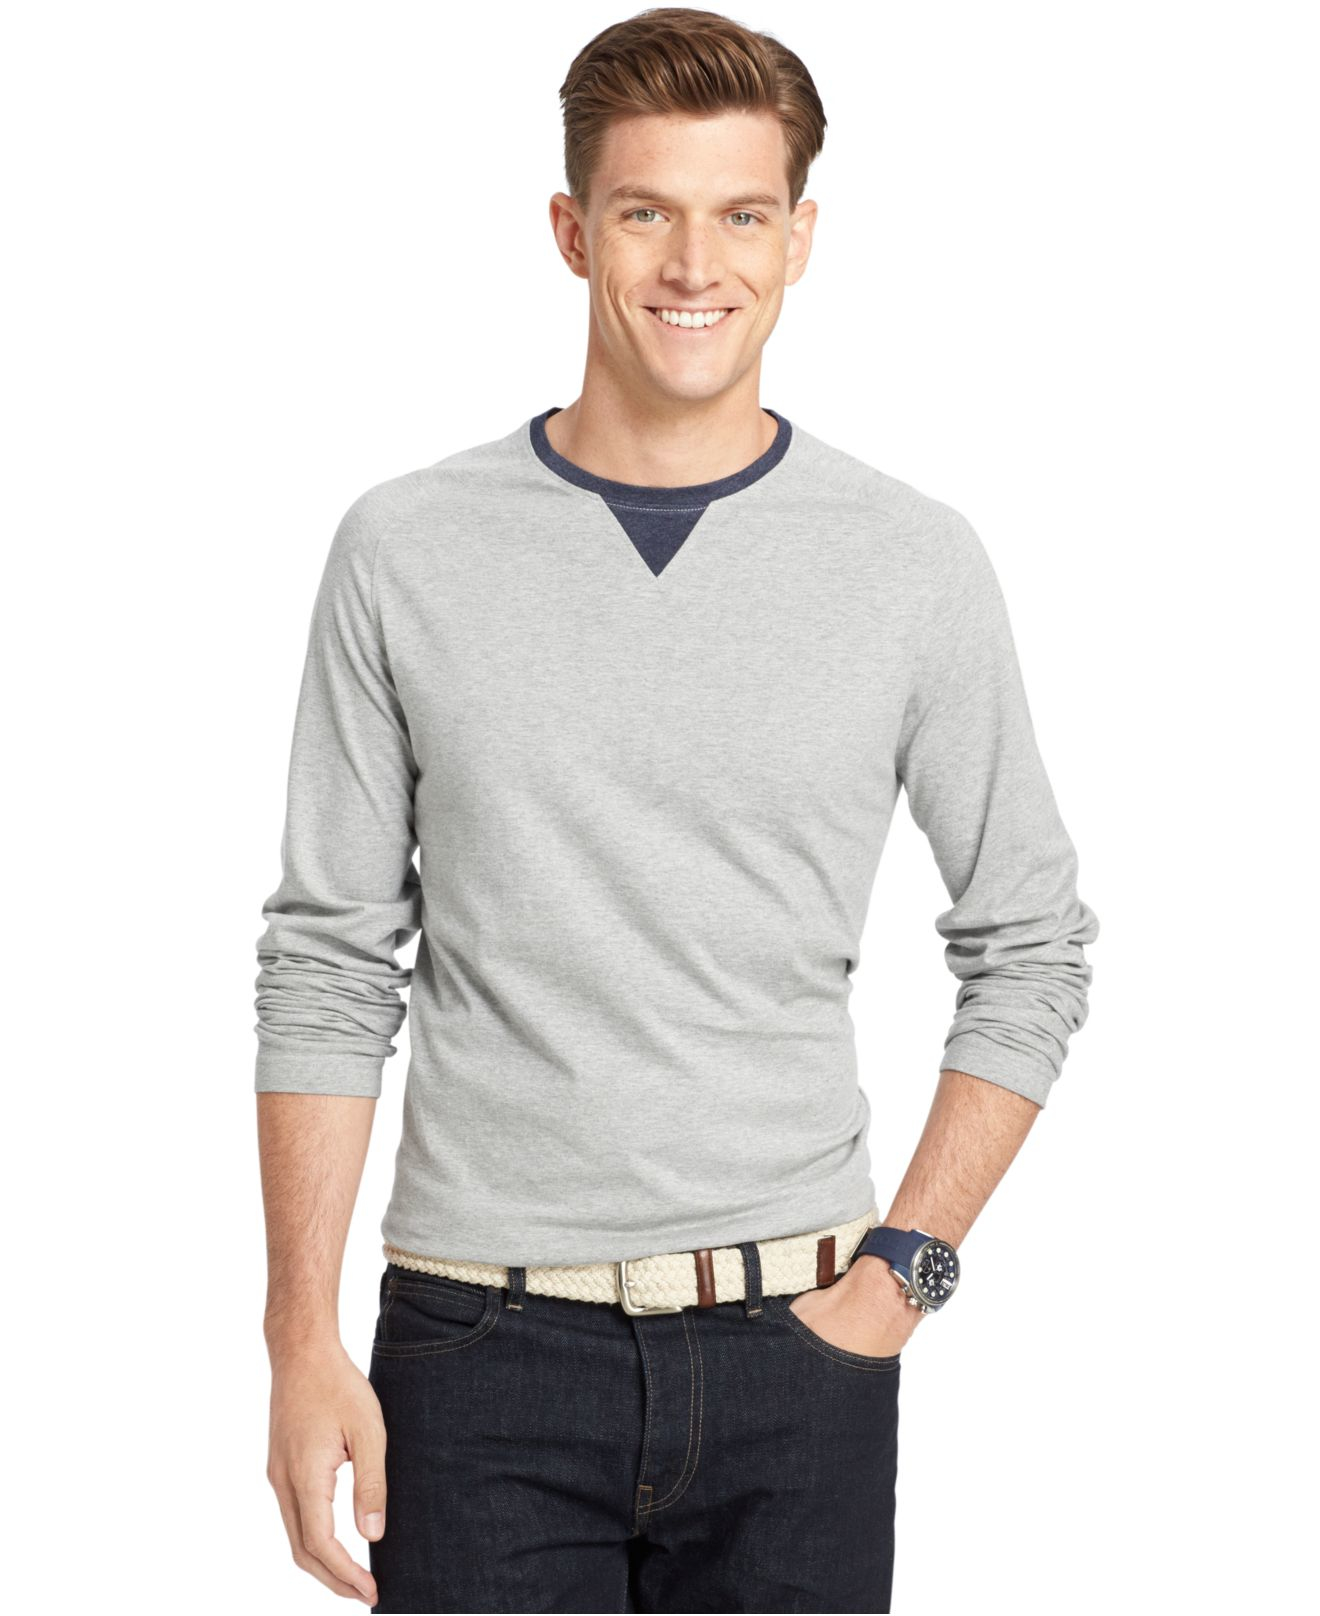 Lyst izod big and tall raglan crew neck long sleeve t for Big and tall long sleeve shirts